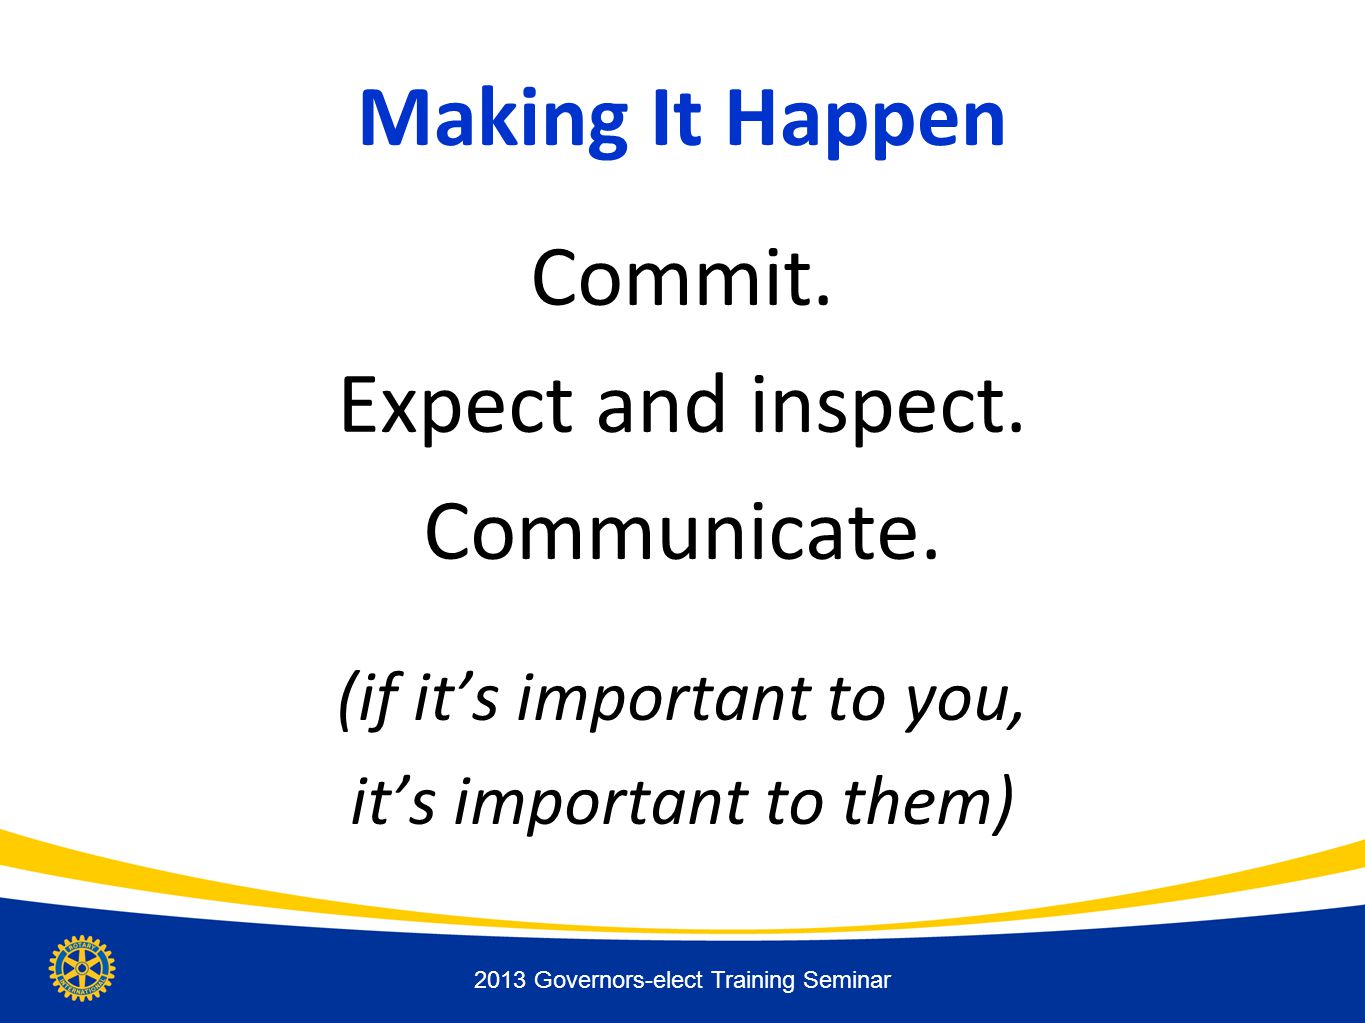 Making It Happen Commit. Expect and inspect. Communicate.